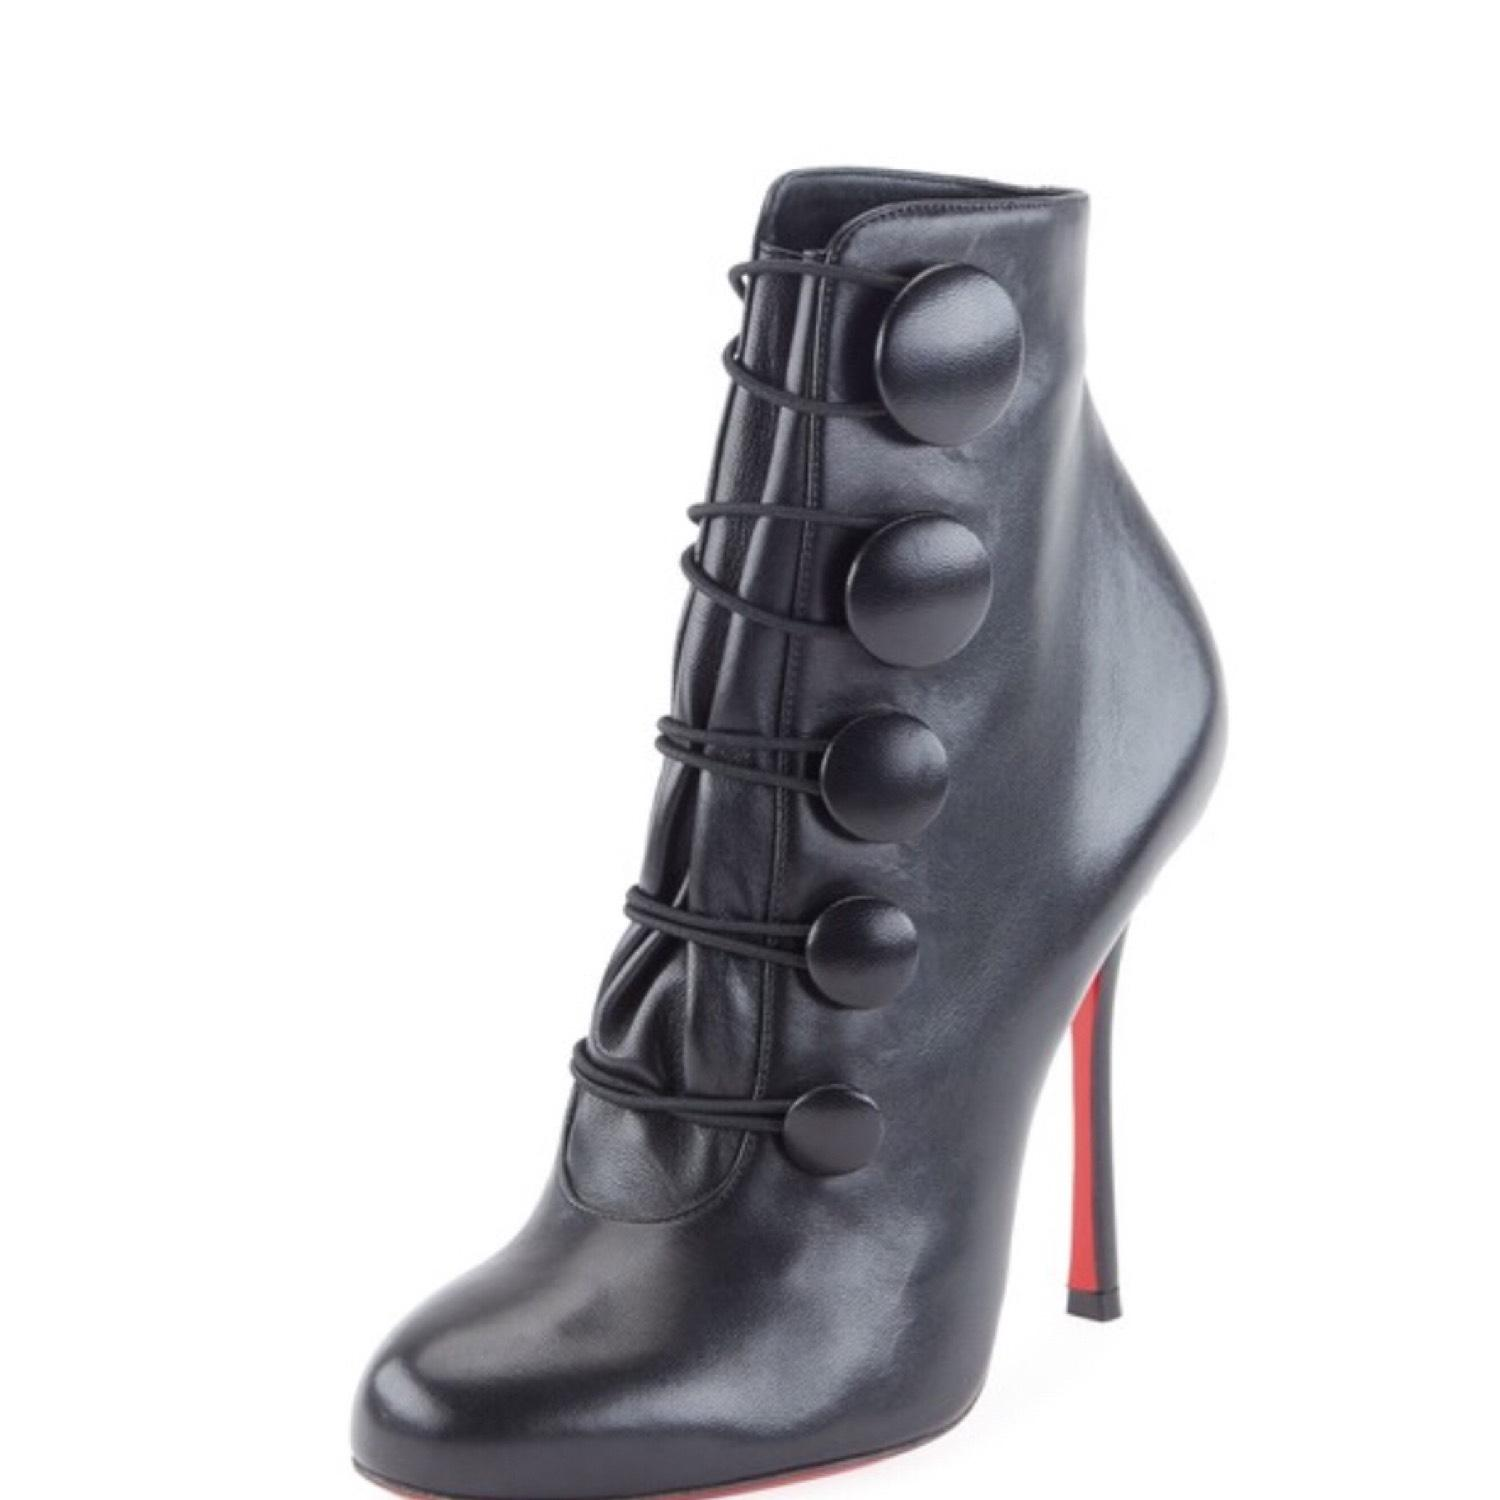 Christian Louboutin Black Booton Leather Red Sole Button Boots/Booties Size US 7.5 Regular (M, B)